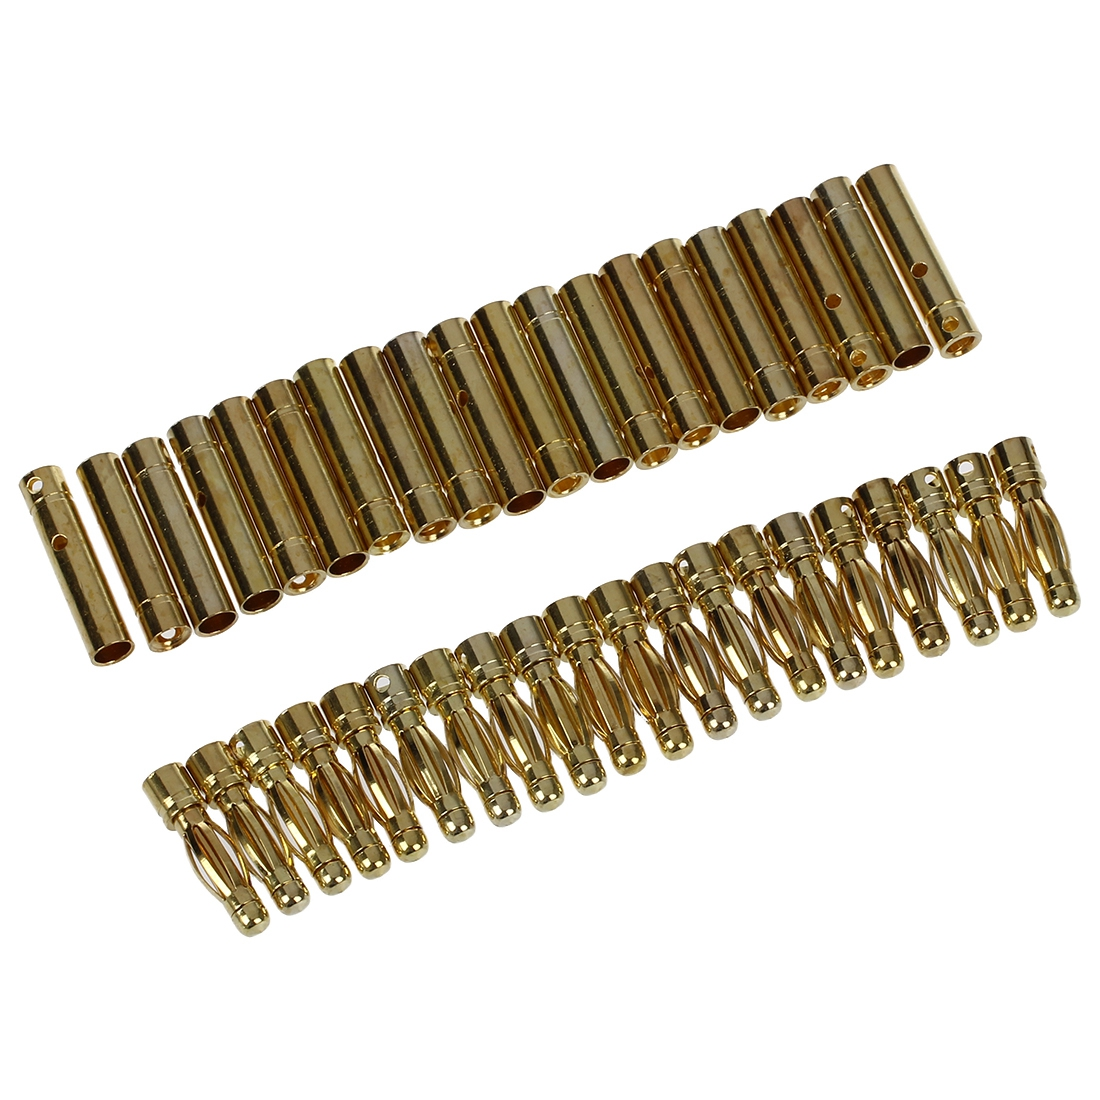 20 Pairs Gold Tone Metal RC Banana Bullet Plug Connector Male Female 4 mm areyourshop hot sale 50 pcs musical audio speaker cable wire 4mm gold plated banana plug connector